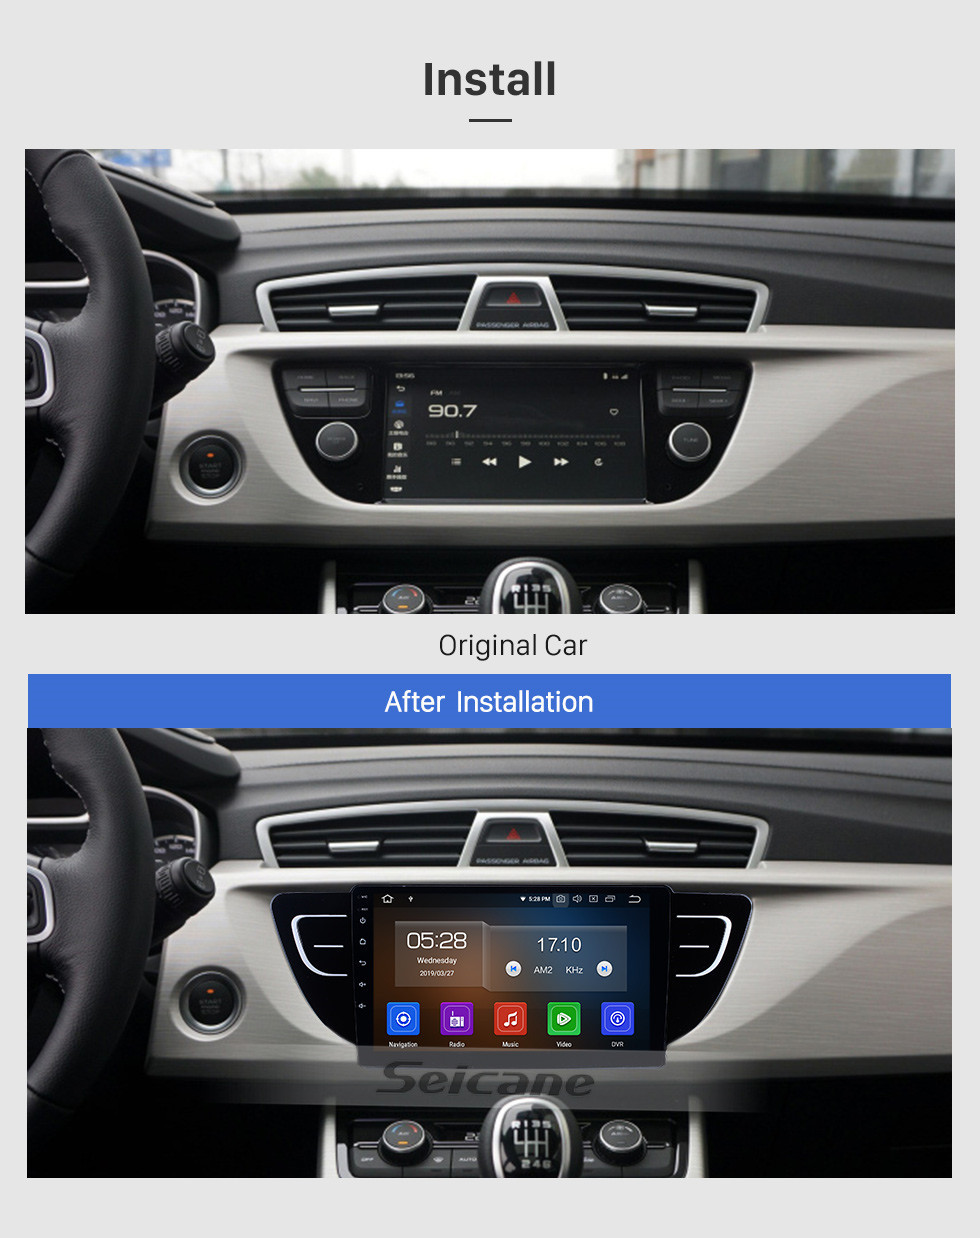 Seicane HD Touchscreen for 2016 2017 2018 Geely Boyue Radio Android 10.0 9 inch GPS Navigation Bluetooth WIFI Carplay support DVR DAB+